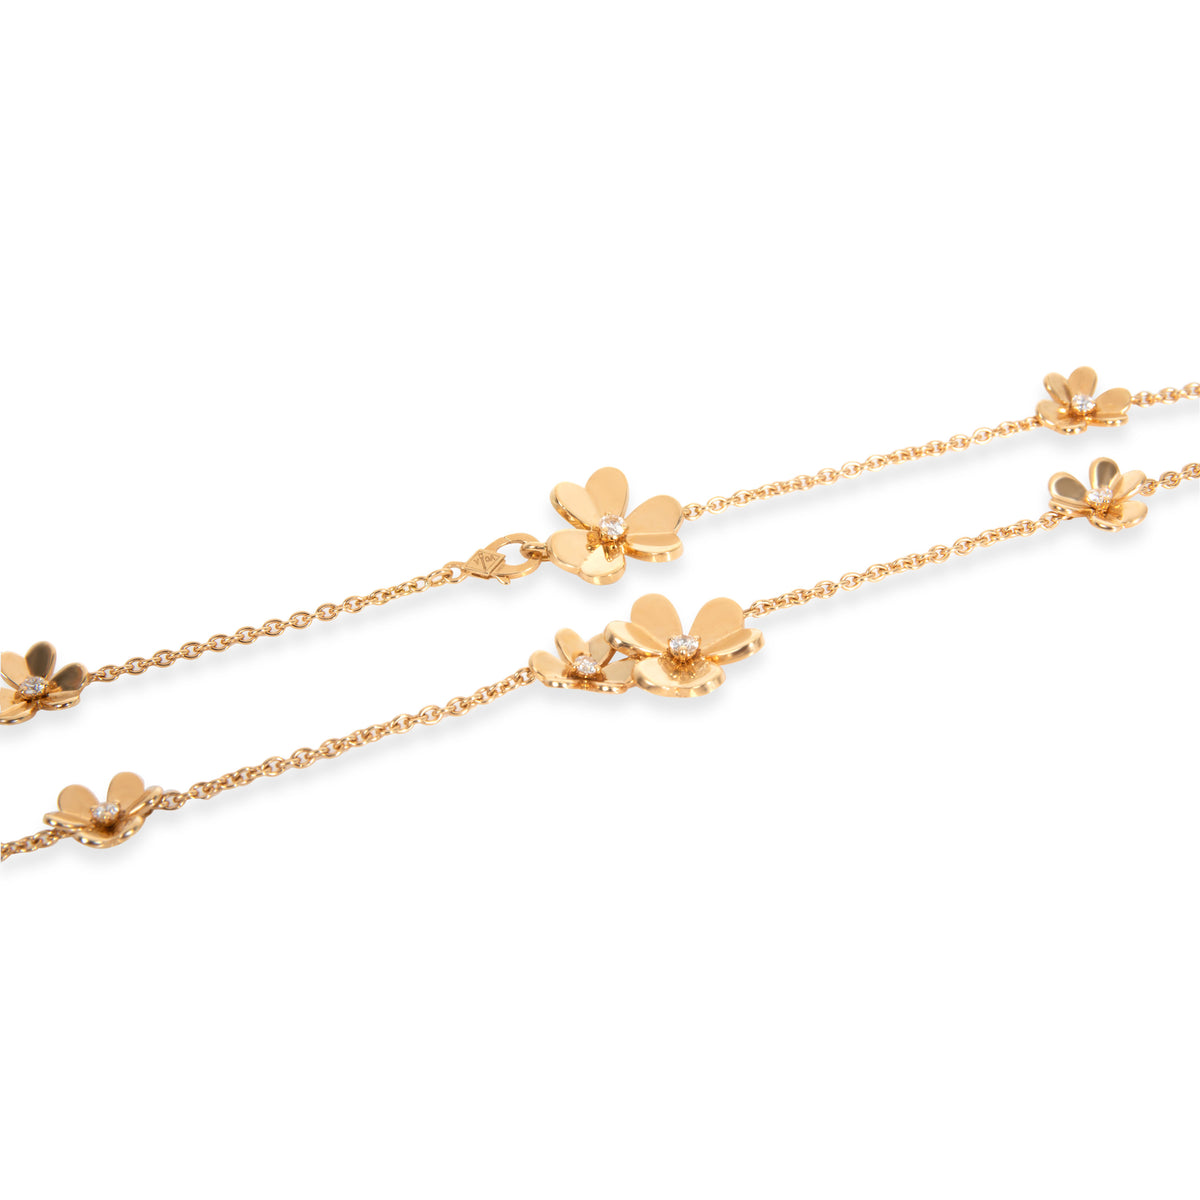 Van Cleef & Arpels Frivole 9 Flowers Diamond Necklace in 18K Yellow Gold 0.61ctw